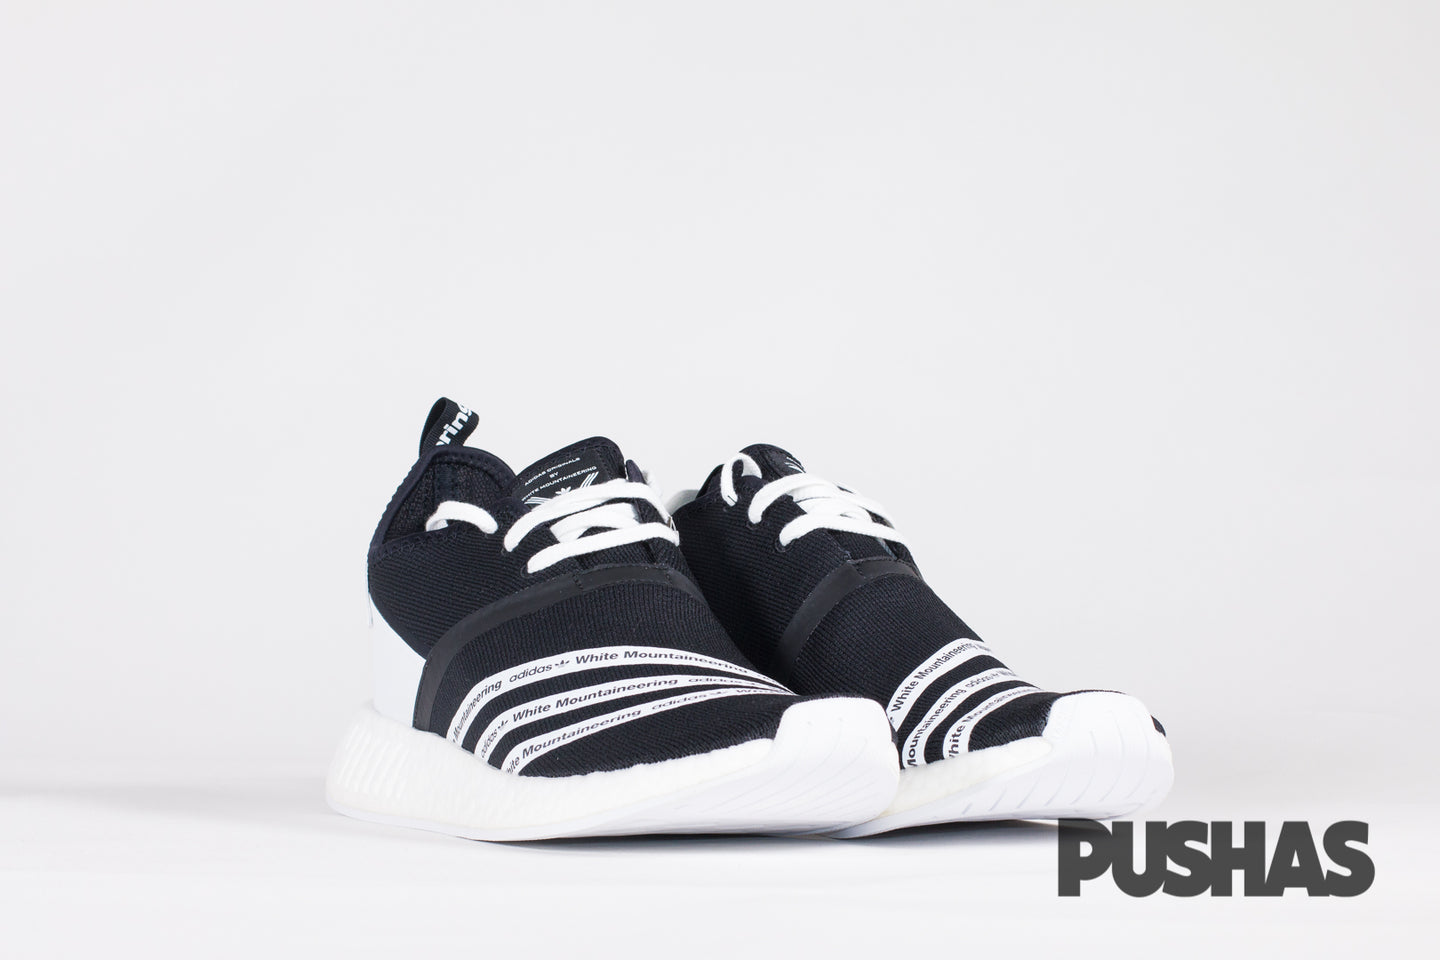 NMD_R2 PK x White Mountaineering - Black (New)